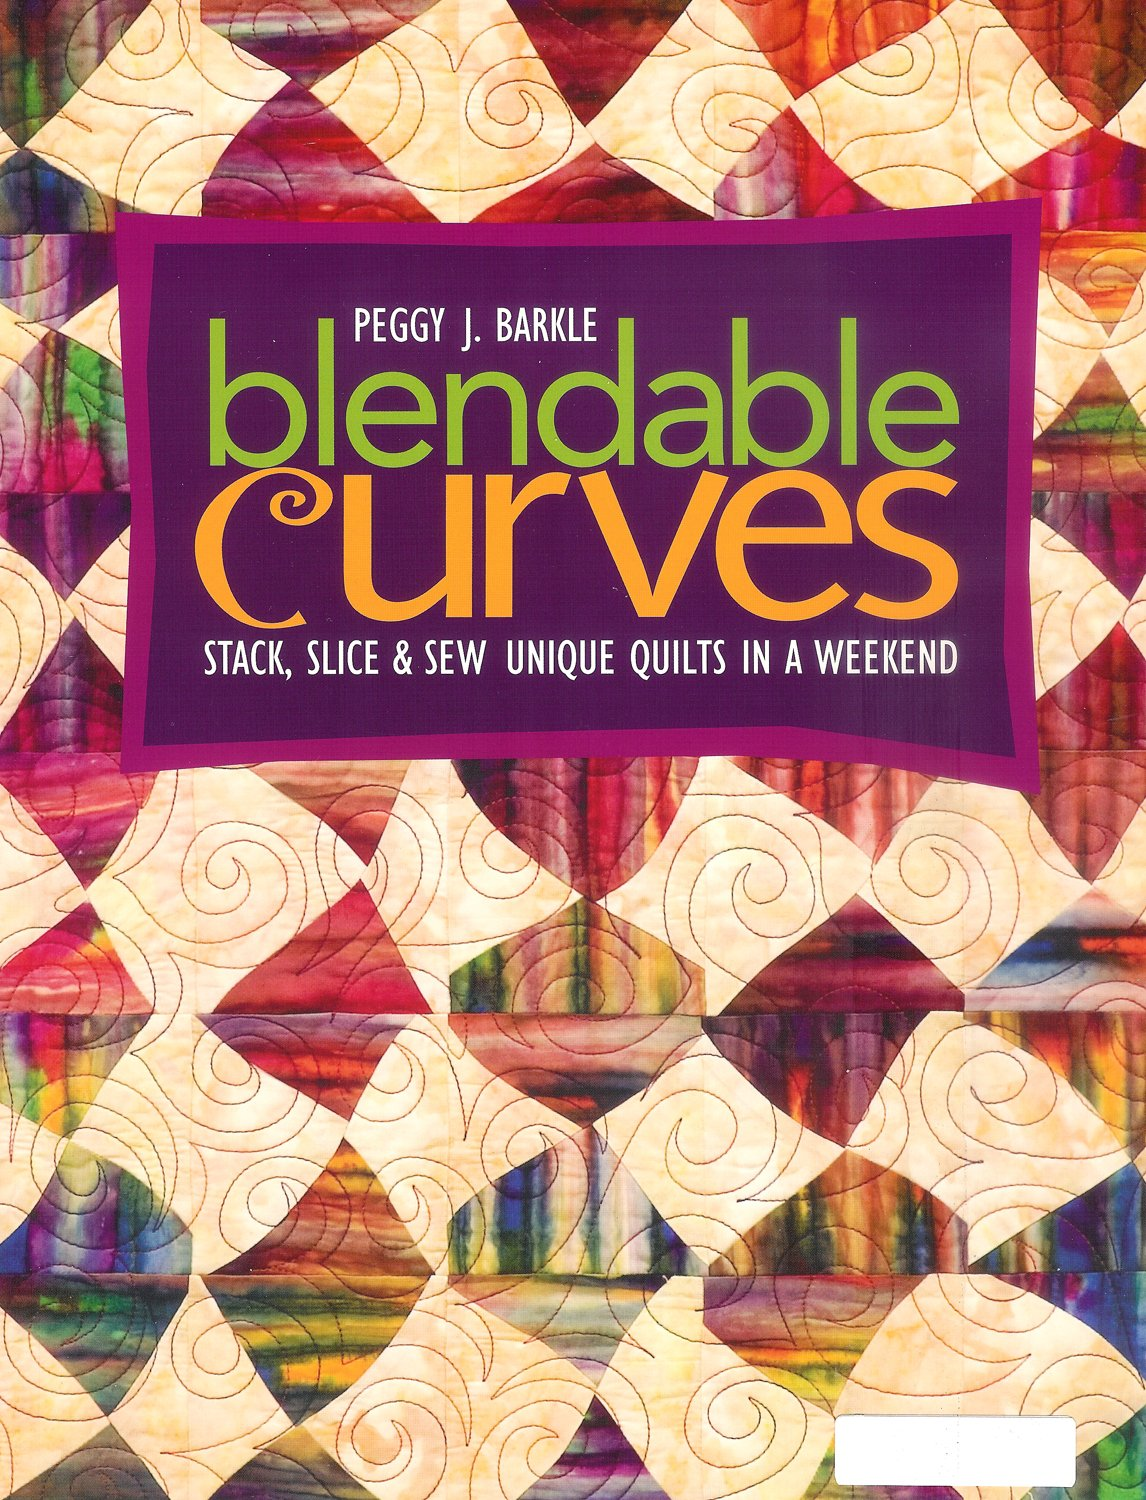 Blendable Curves<br/>Peggy J. Barkle